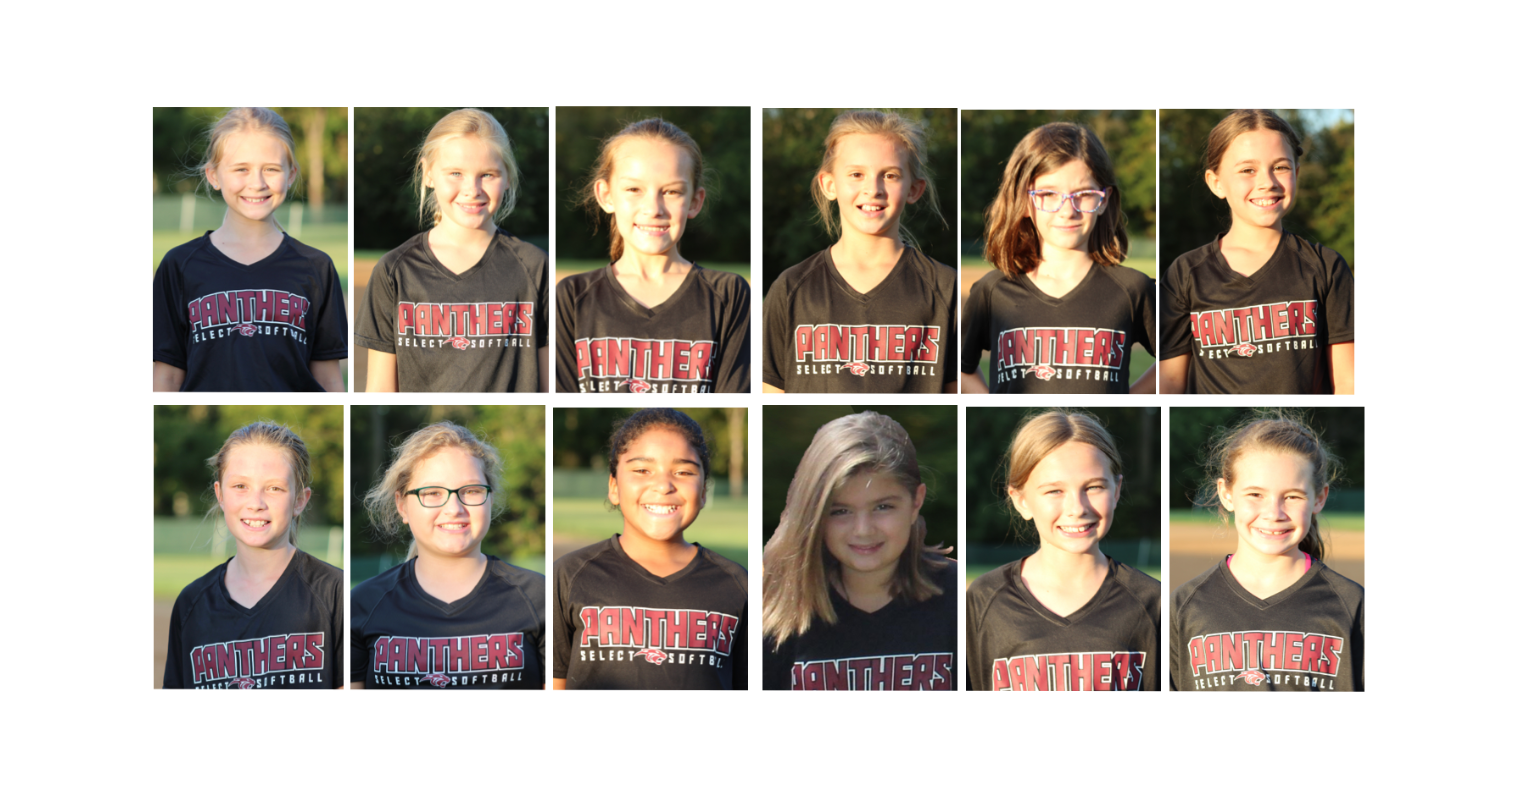 12U Team - Stuth